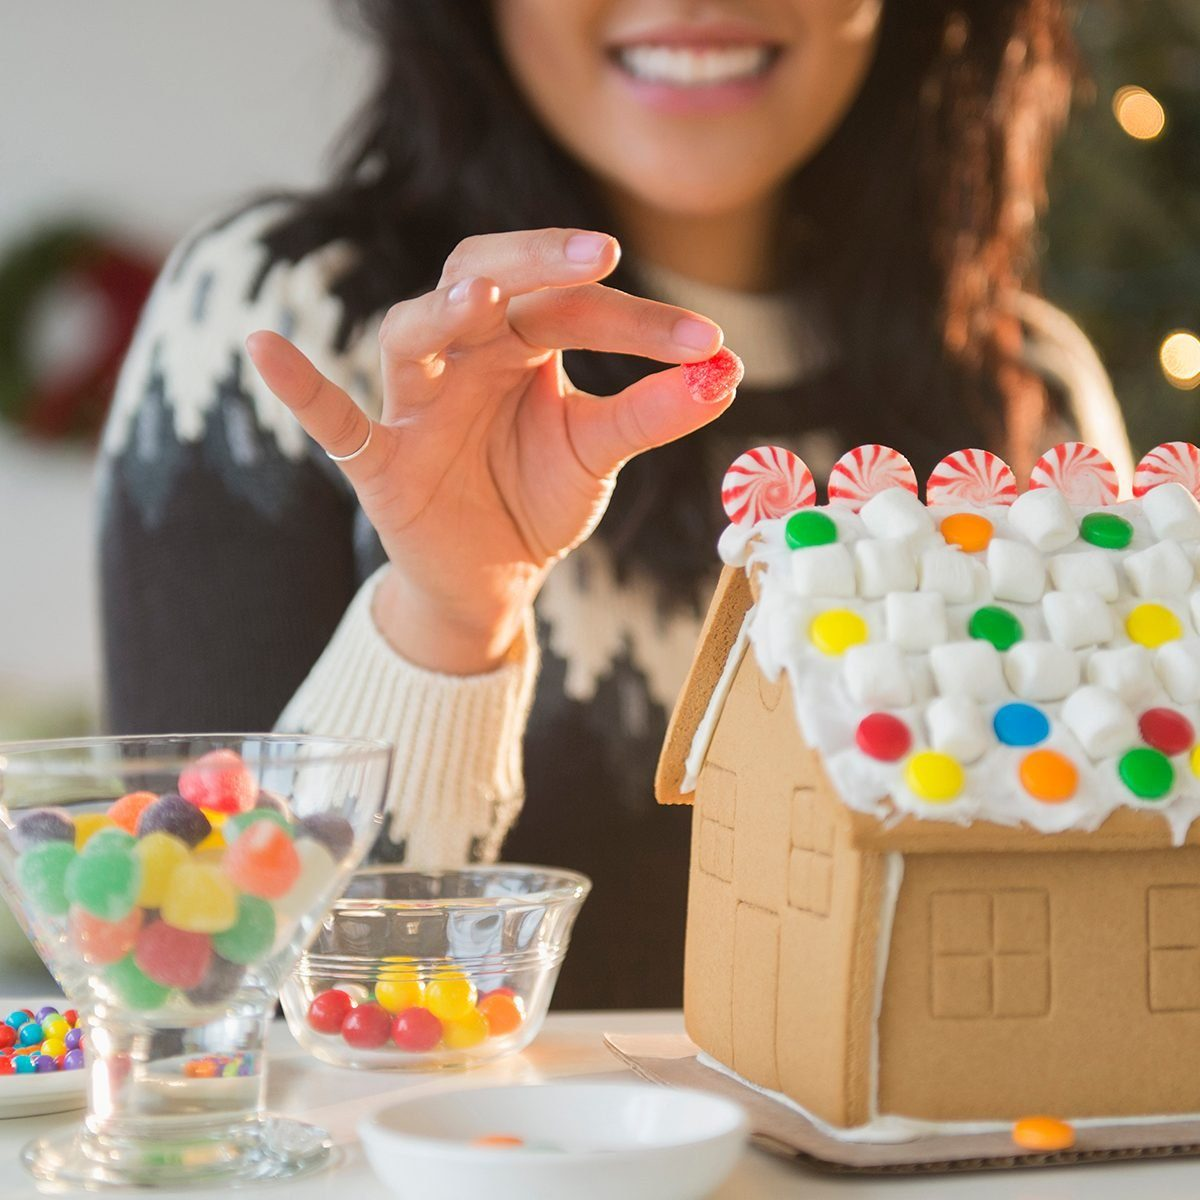 Pacific Islander woman decorating gingerbread house